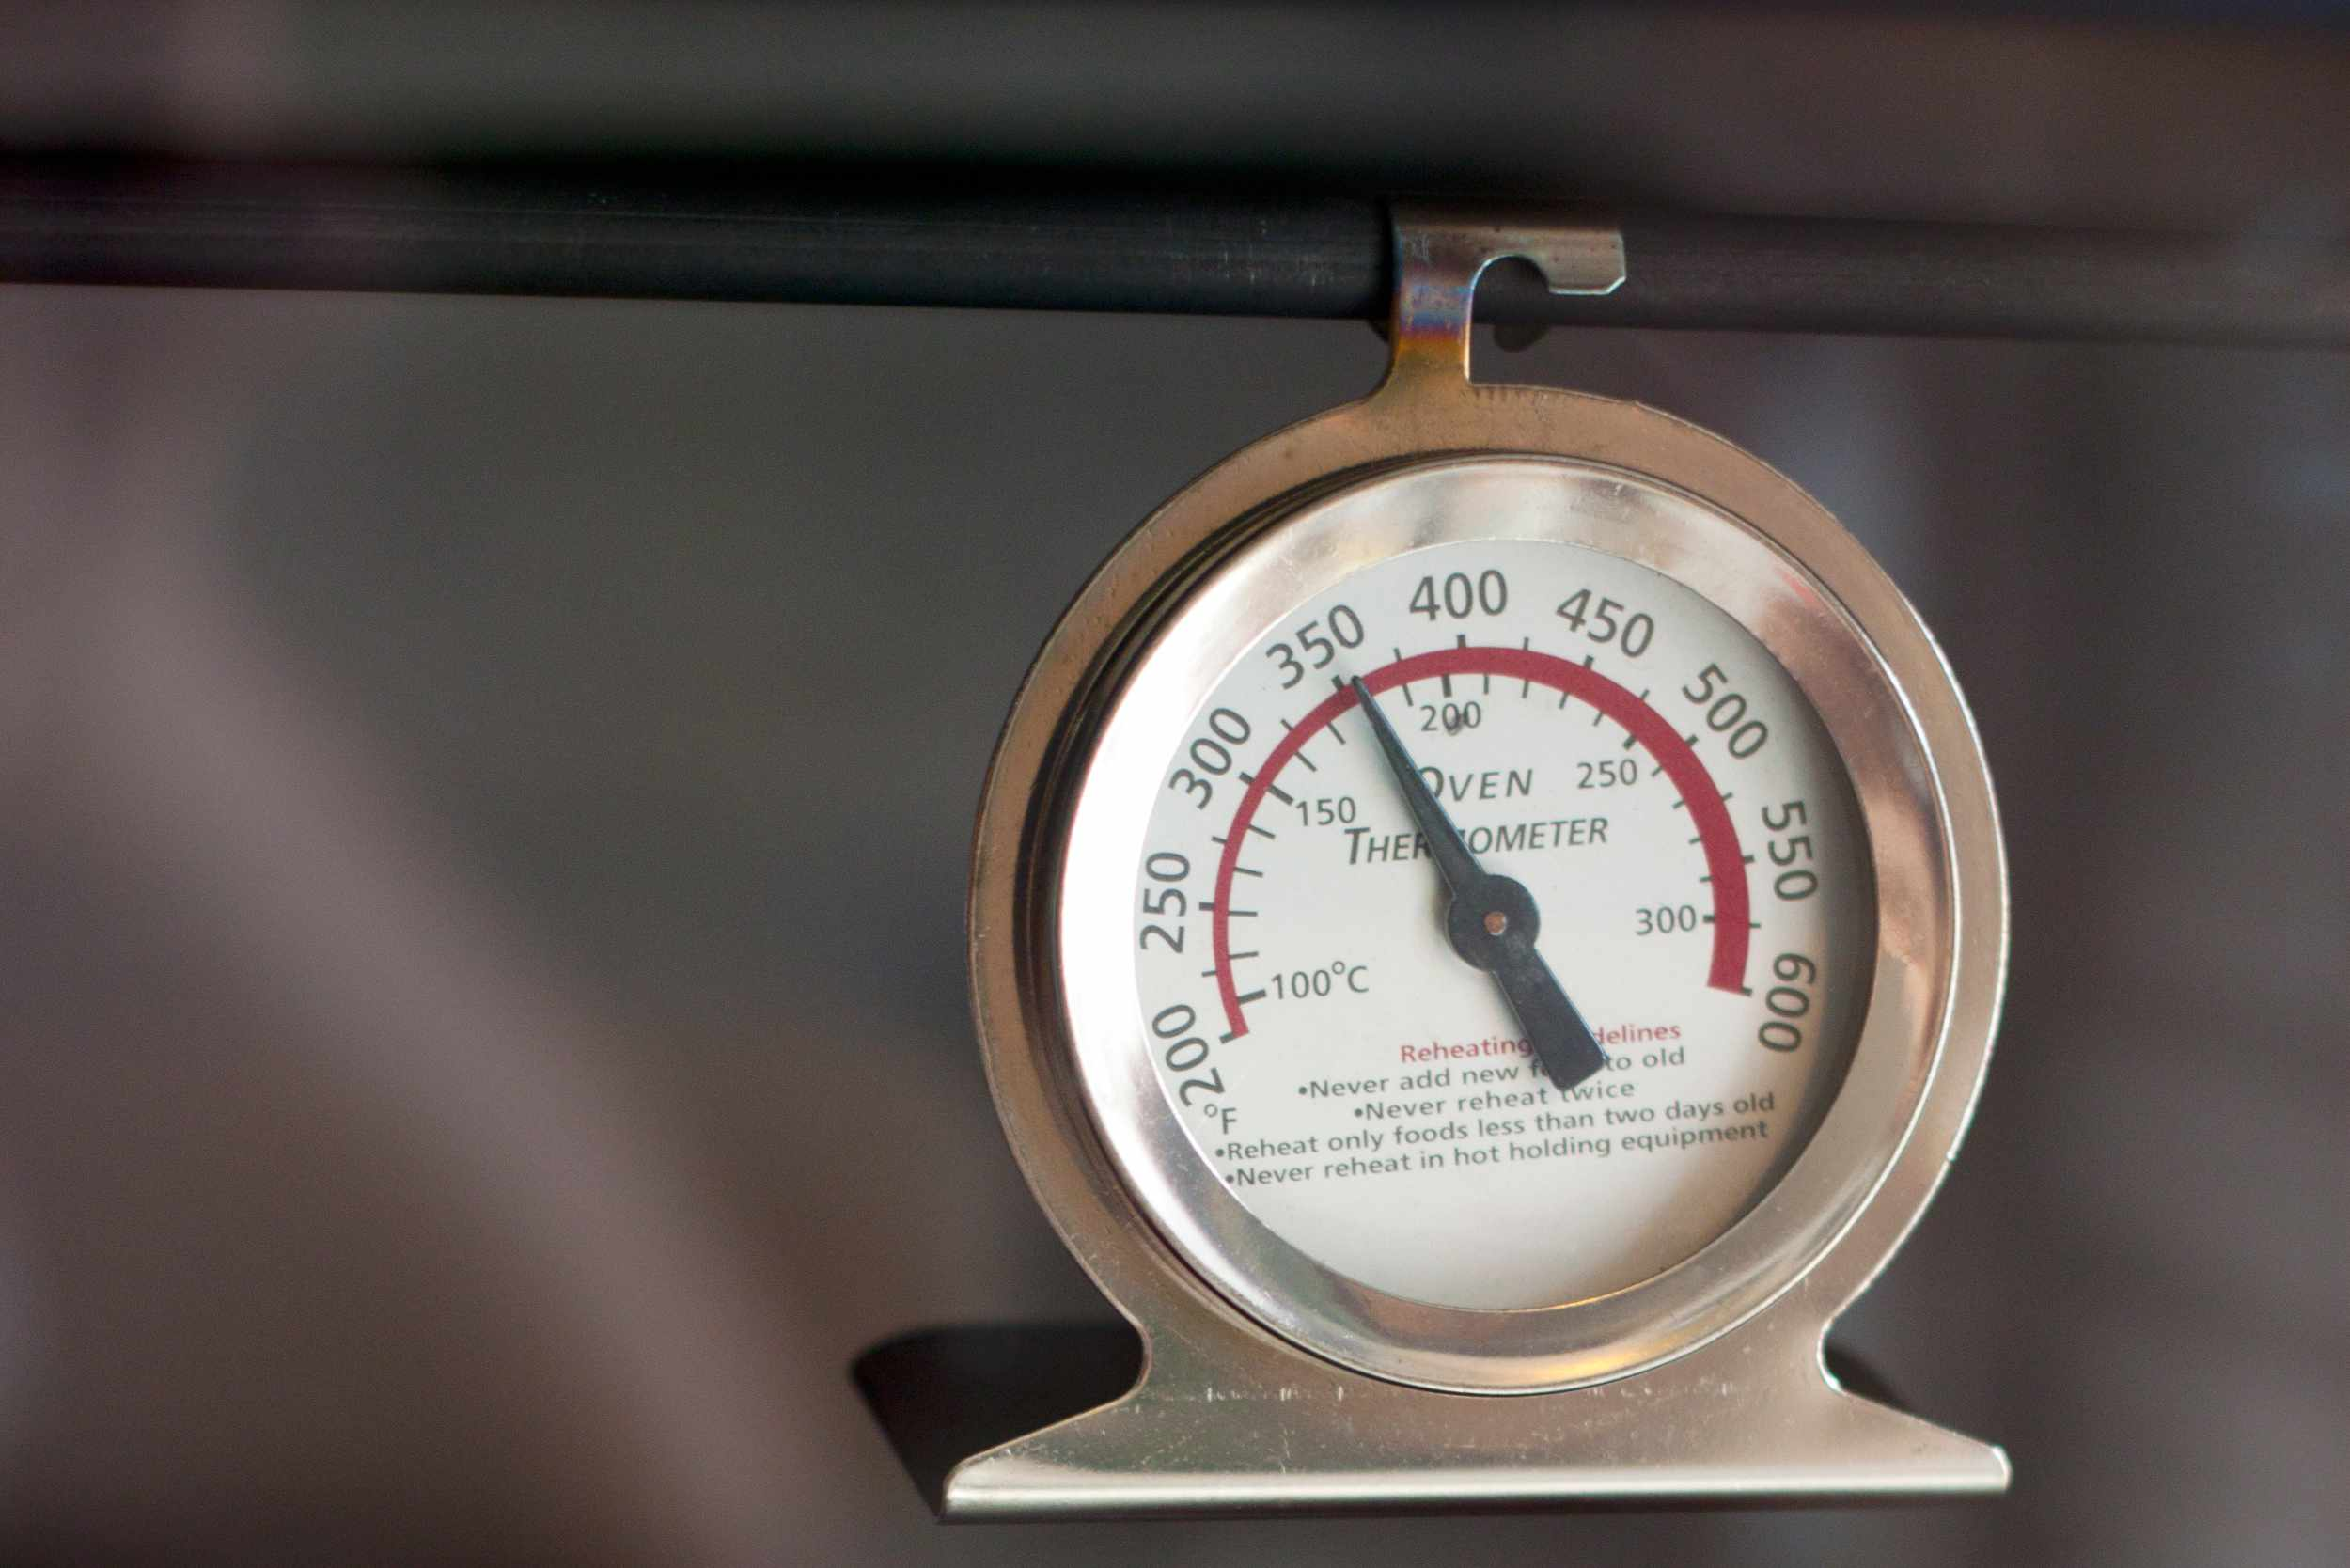 An oven thermometer helps confirm that your oven is heating properly.